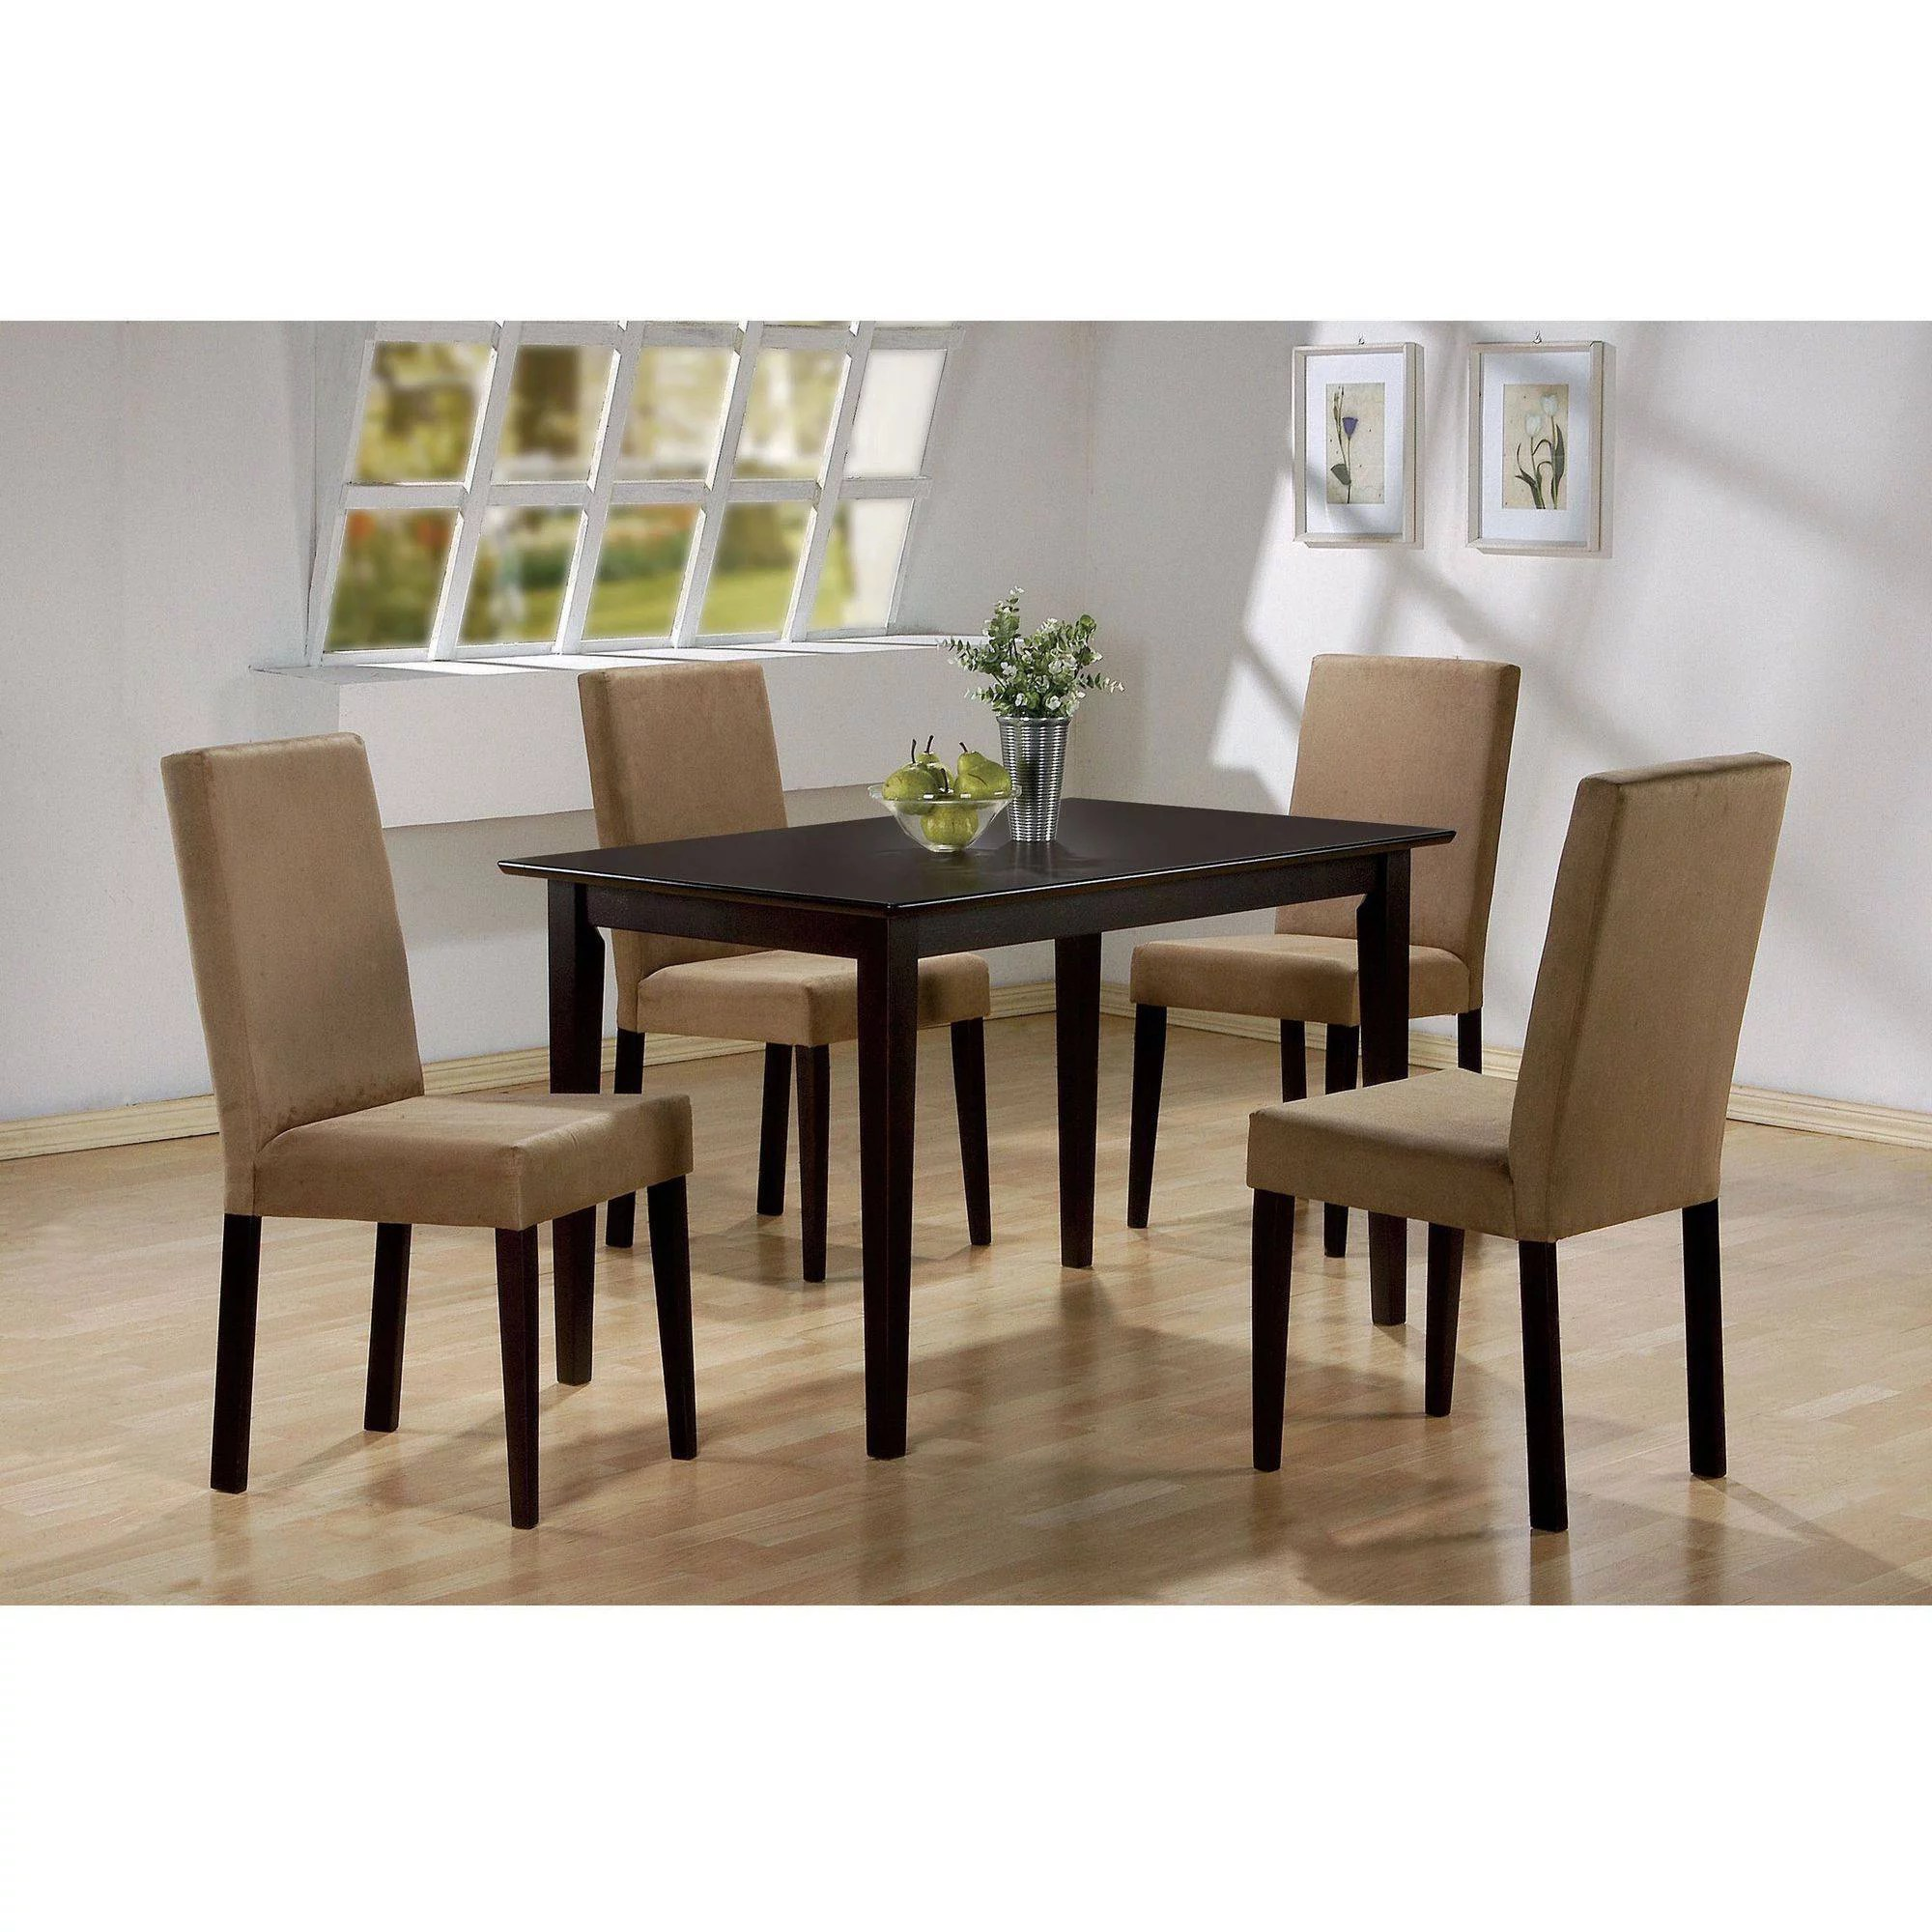 Table With Chairs Coaster Company Clayton Dining Table Chairs Sold Separately